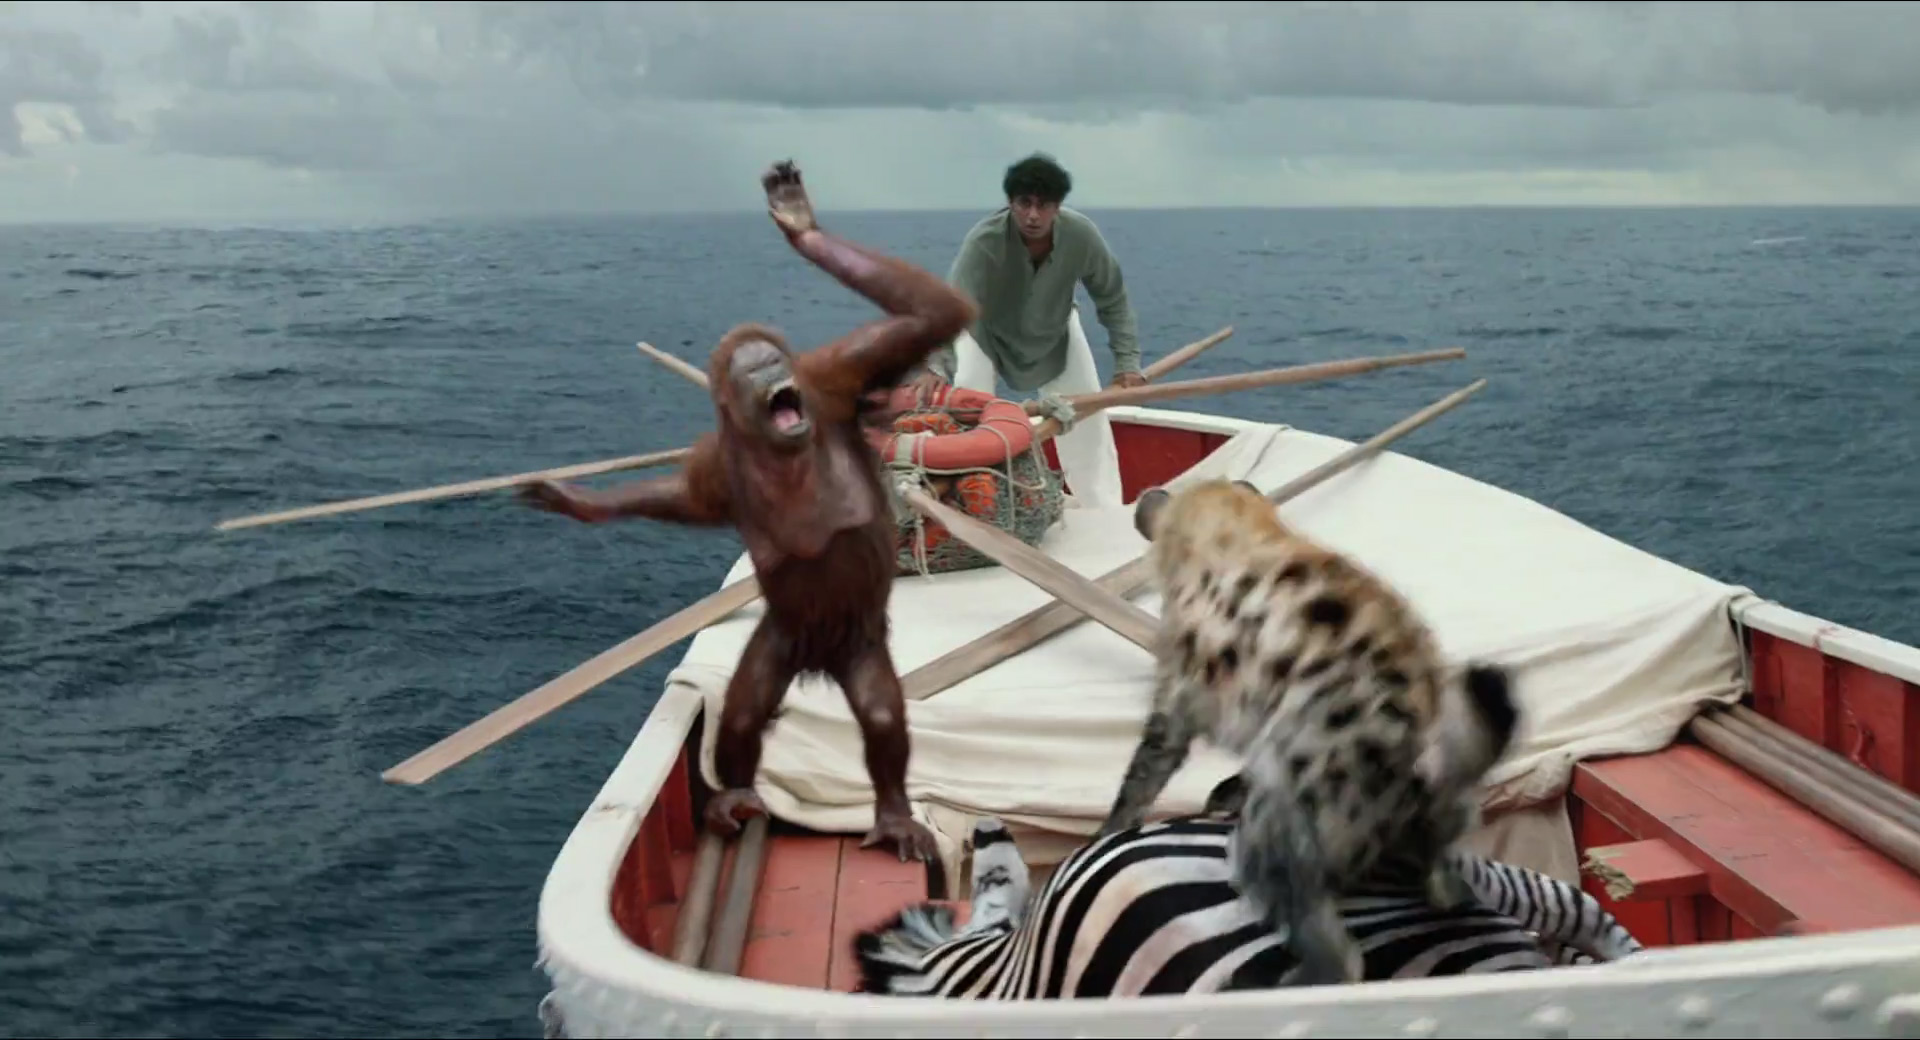 life of pi monomyth Joseph campbell may have over-emphasized the similarities in these hero's journey stories, going so far as labeling this pattern the monomyth and of life, from.